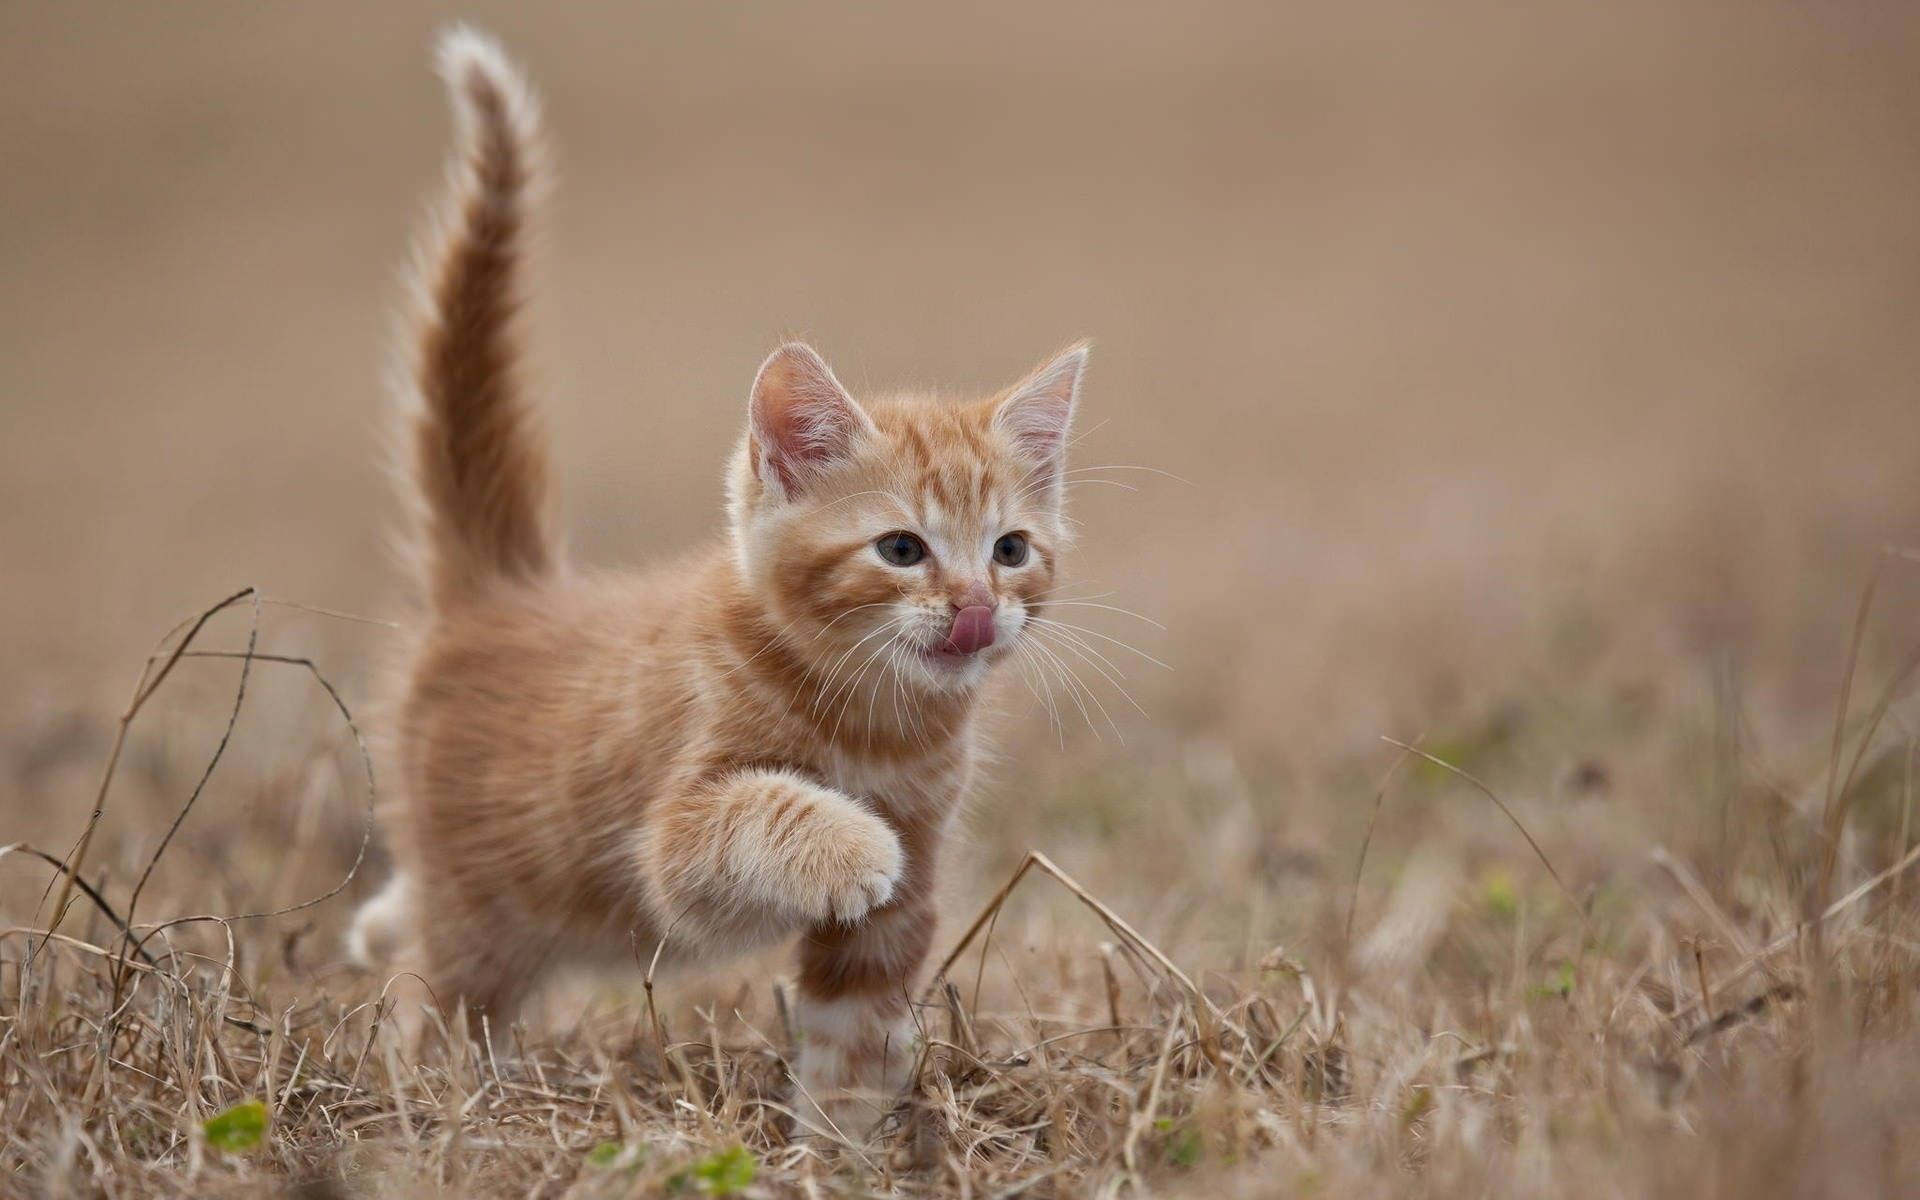 Kitten wallpaper ·① Download free cool HD backgrounds for ...